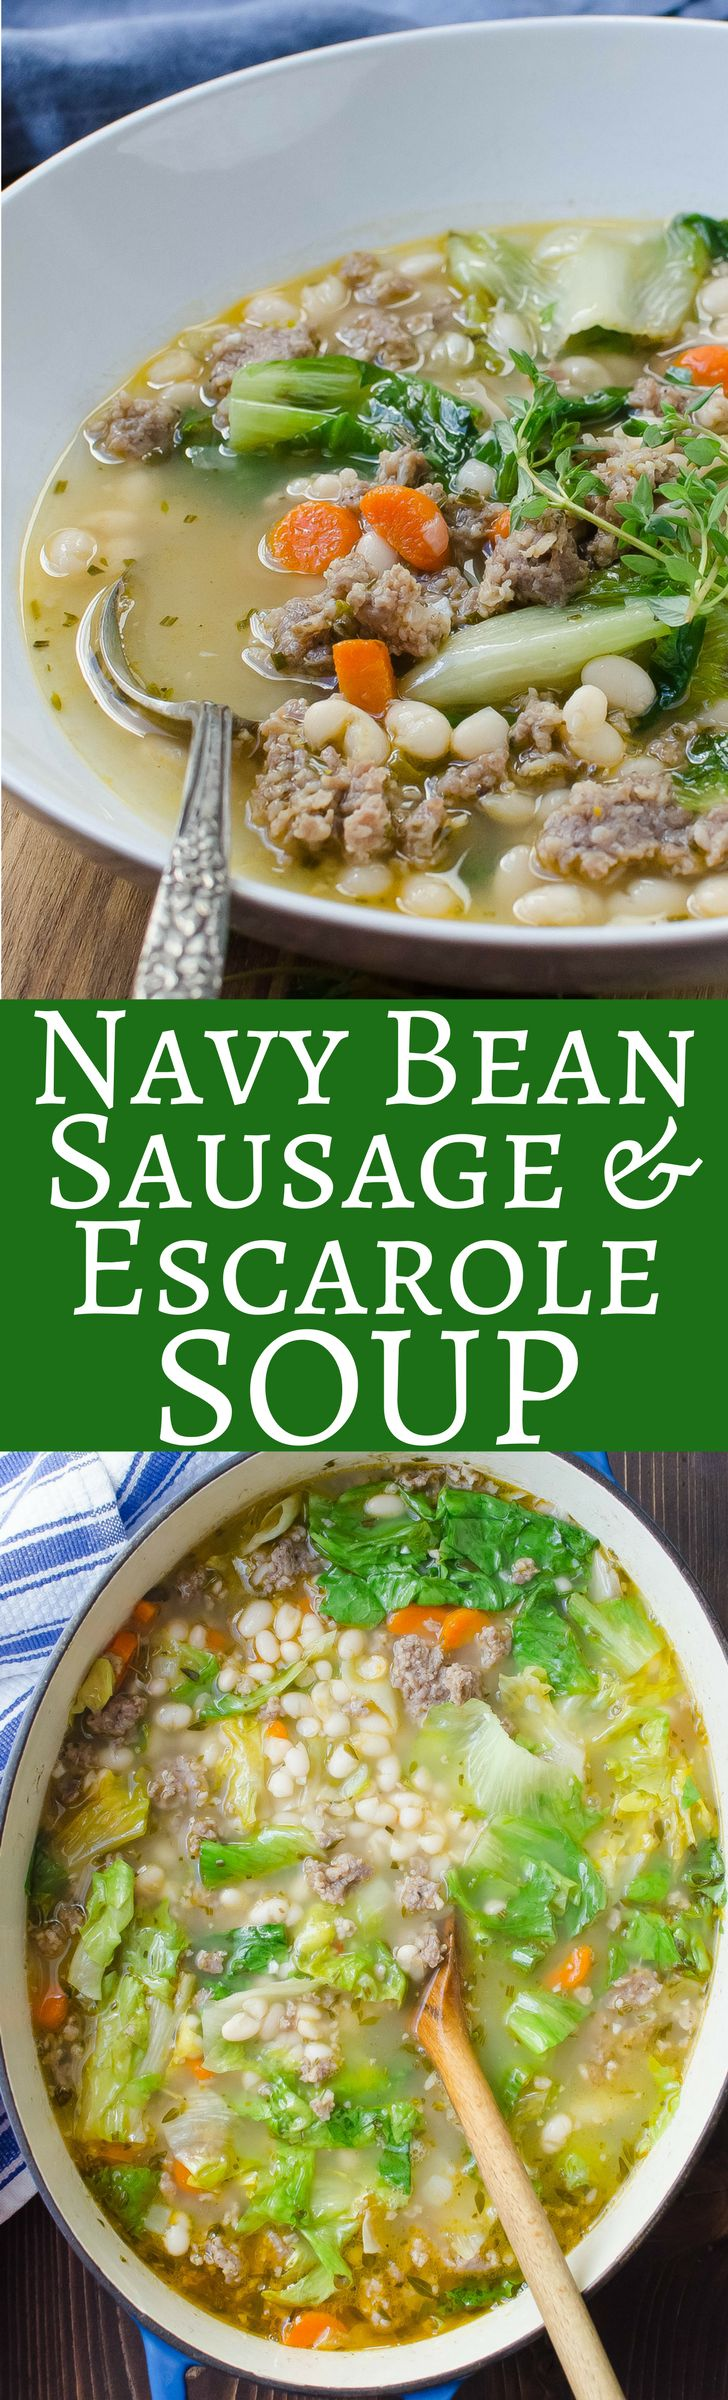 Navy Bean Sausage and Escarole Soup - Inexpensive and super easy to make -- this is comfort food at it's best!